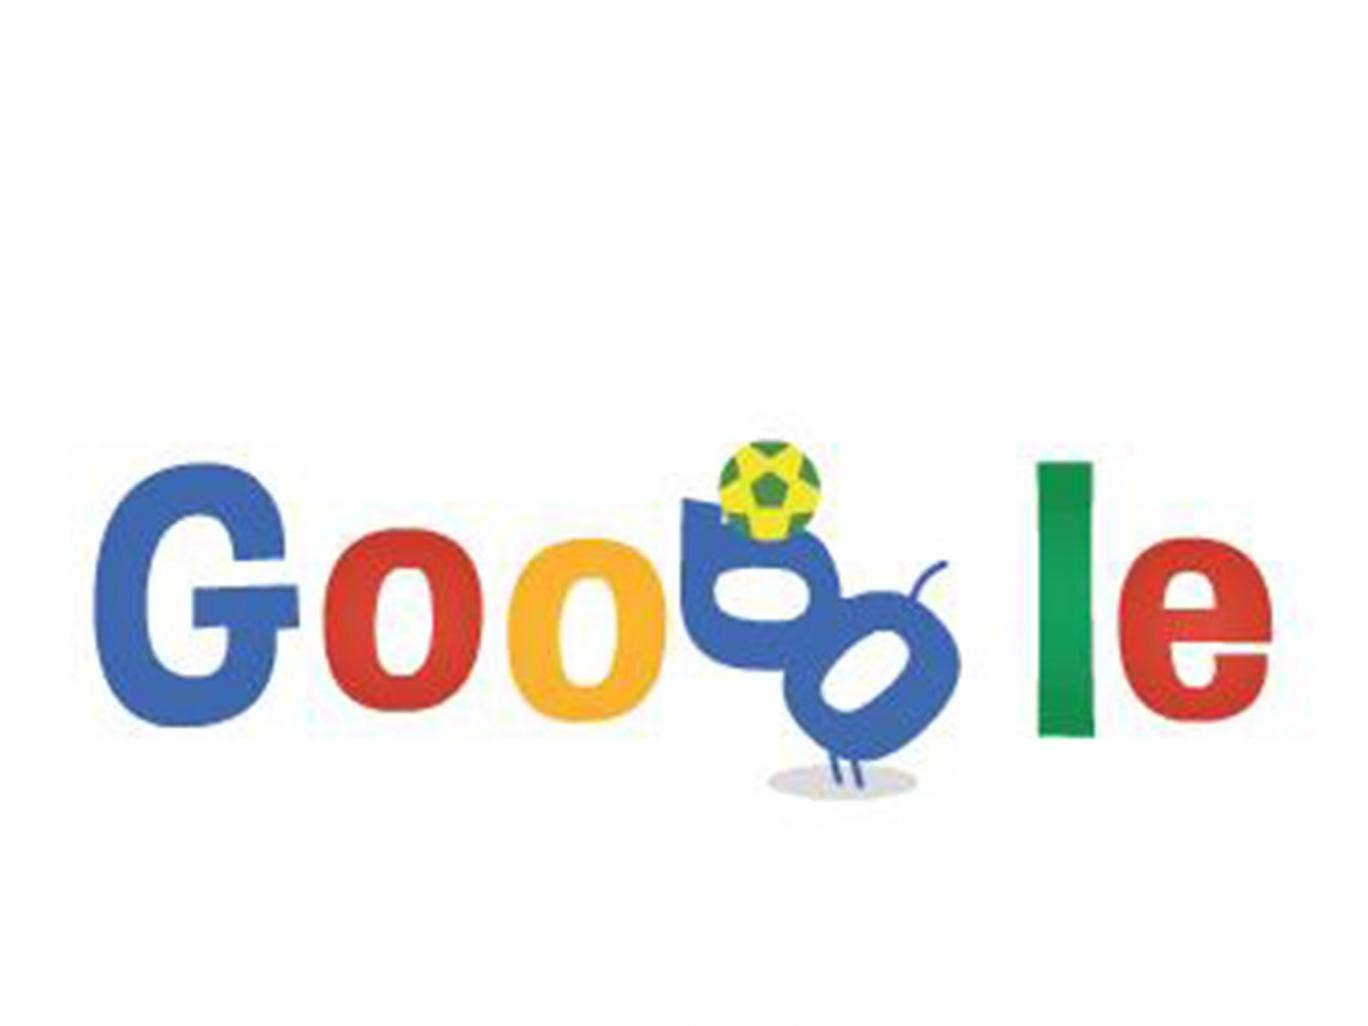 19 June 2014: Google celebrates the eighth day of the 2014 world cup with an animated doodle